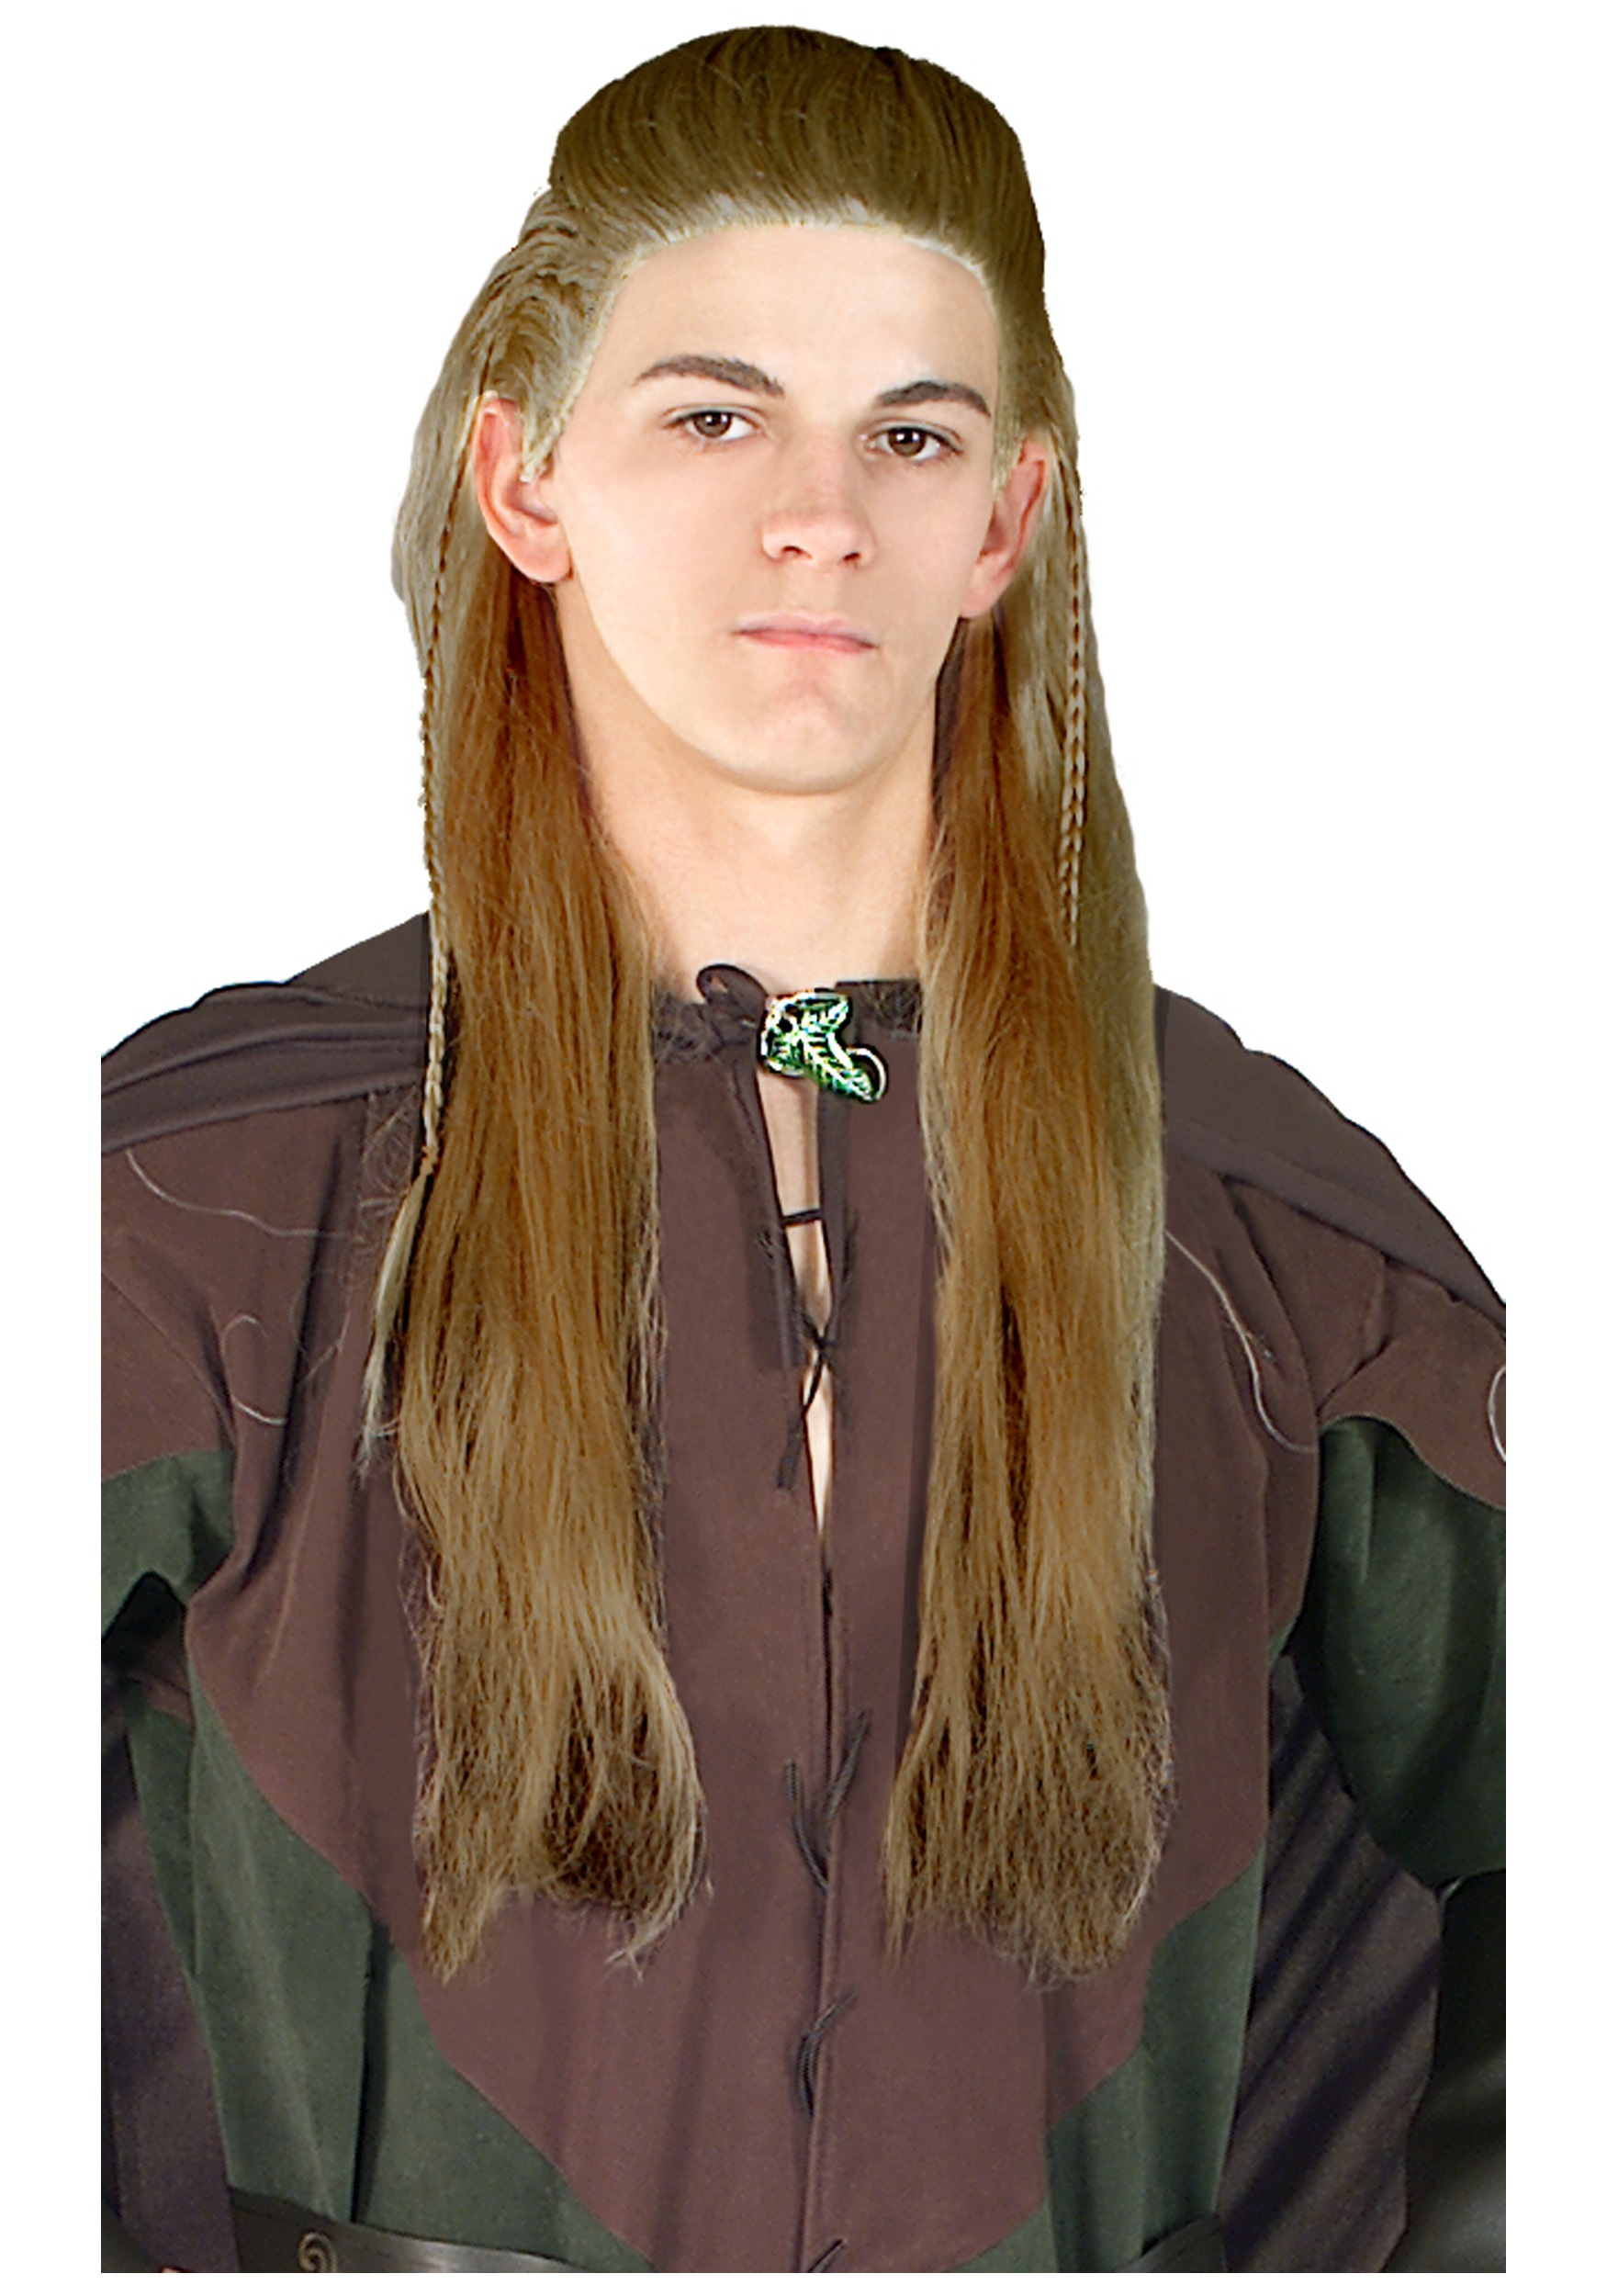 Legolas Greenleaf The One Wiki To Rule Them All View Best Legola Lord Of Rings Full Body